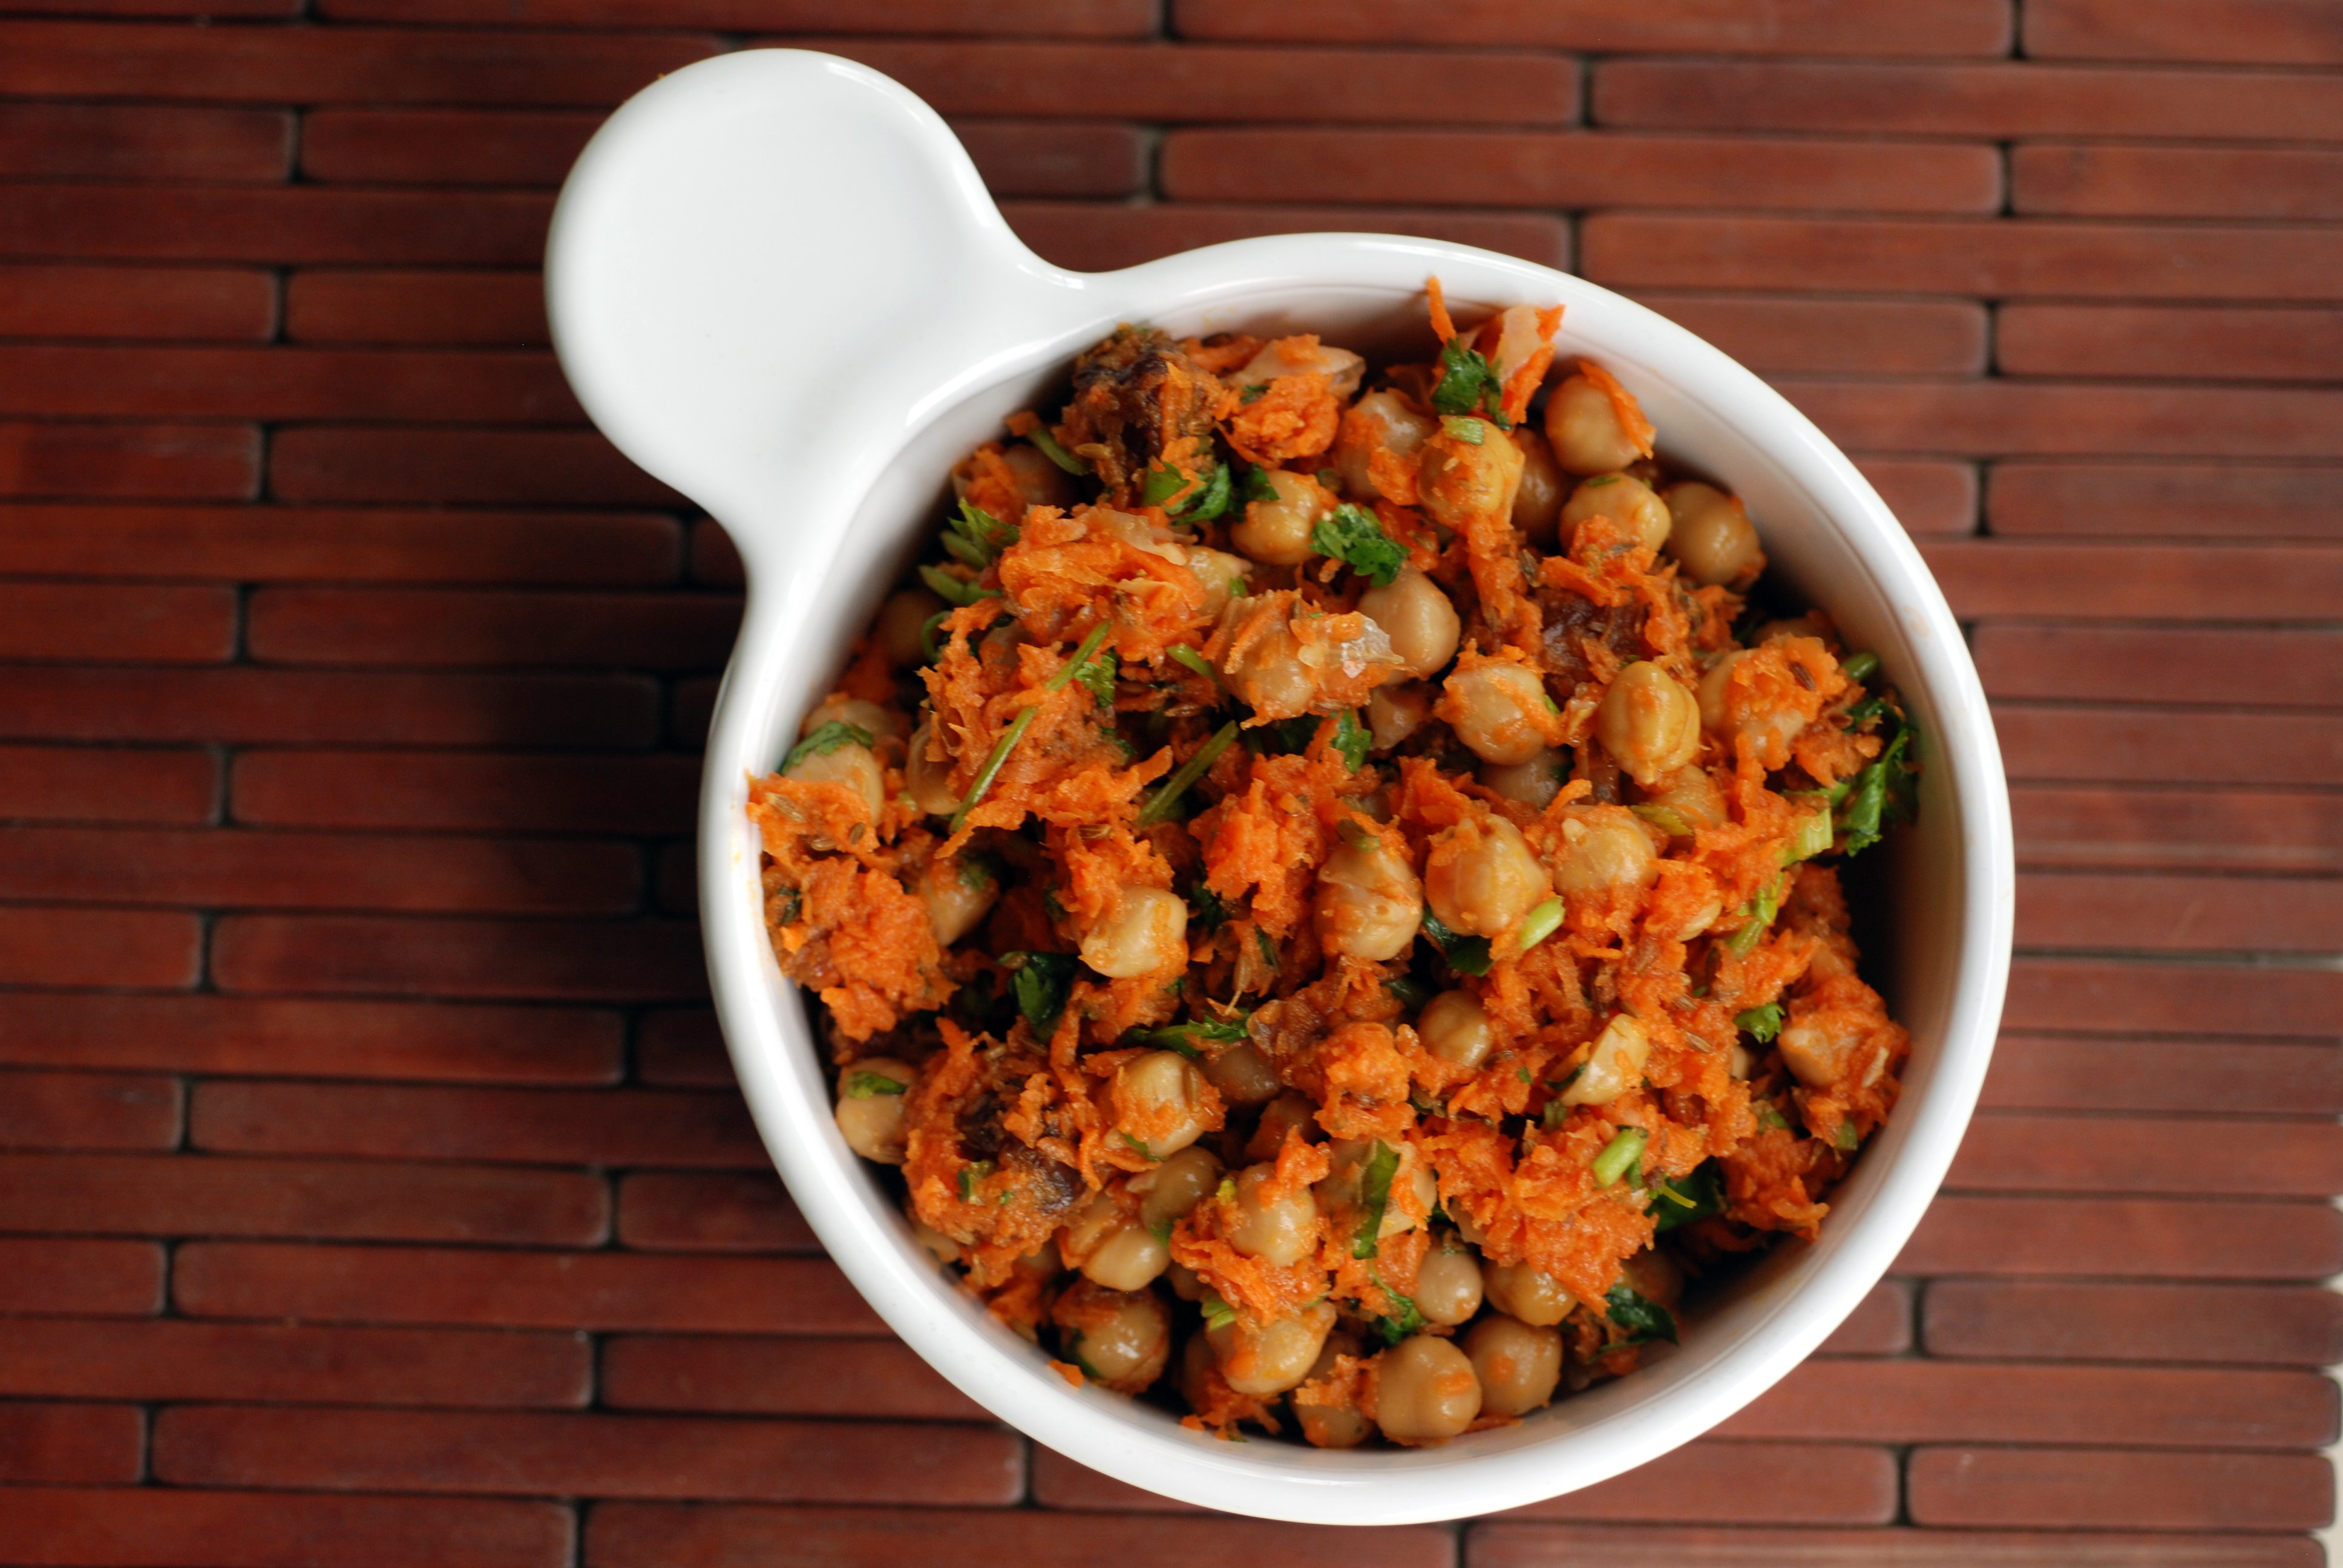 Morrocan Carrot and Chickpea Salad | the taste space